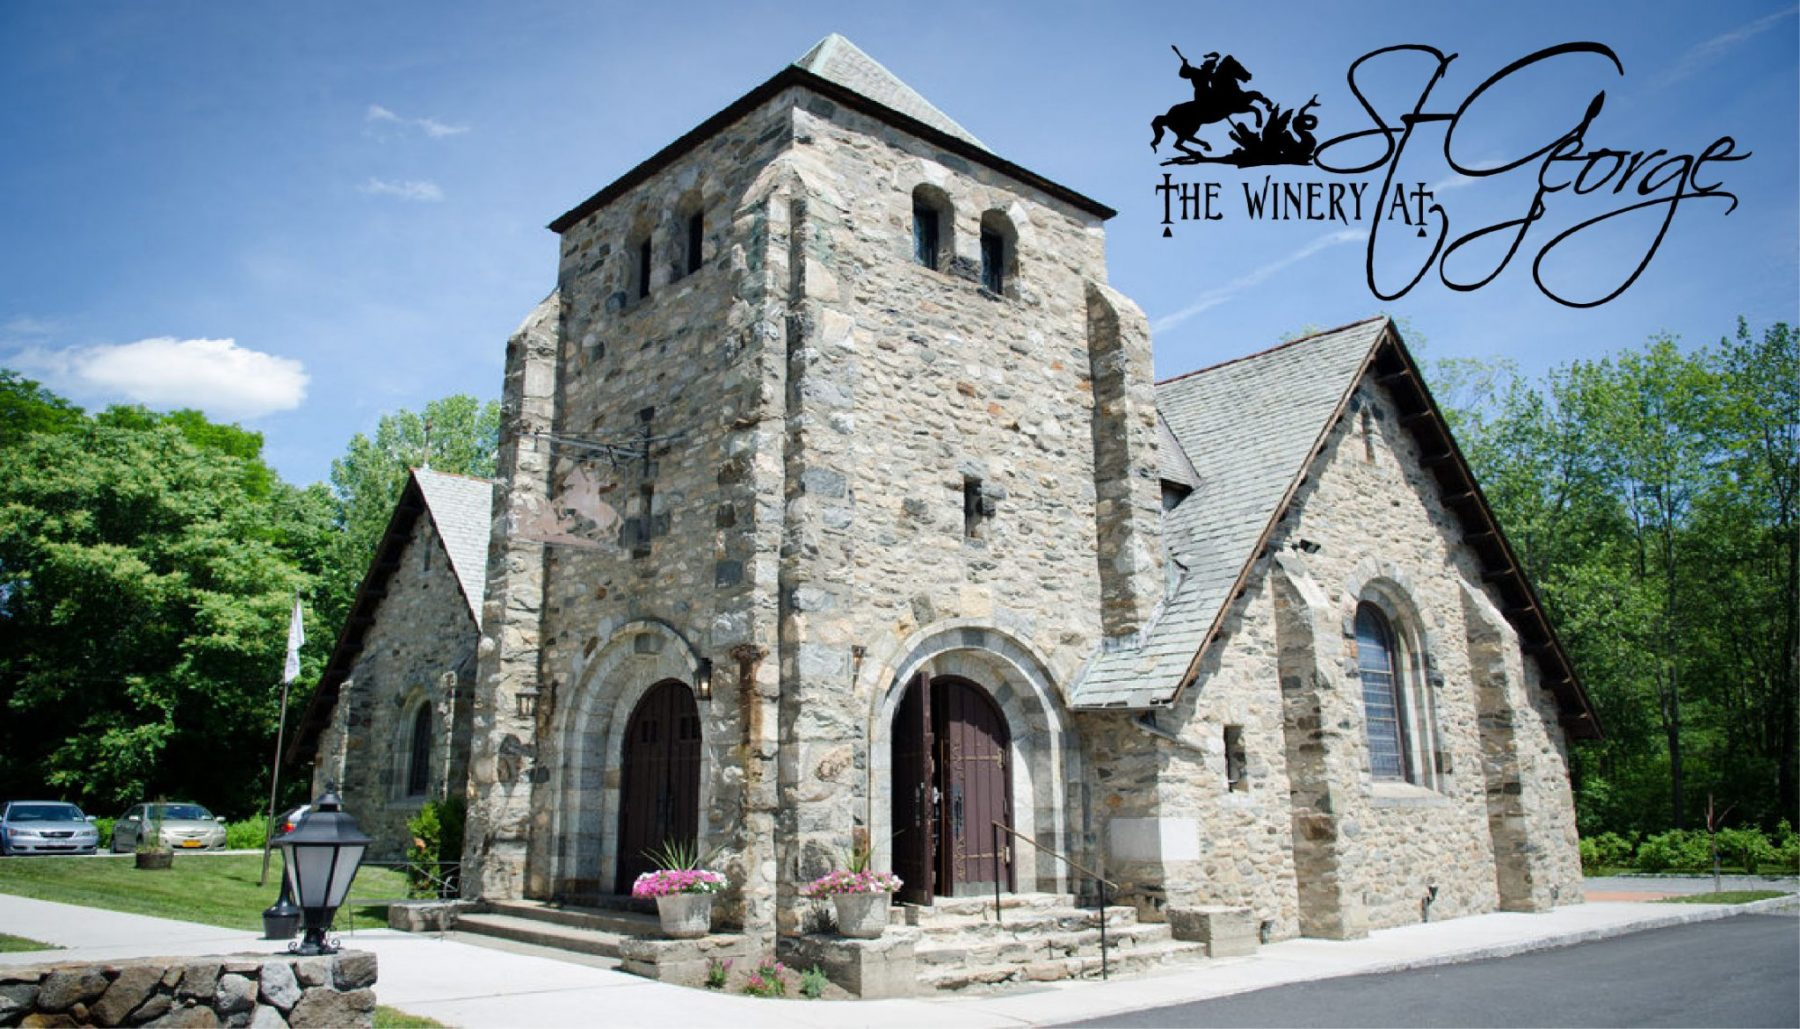 TheWinery at St.George